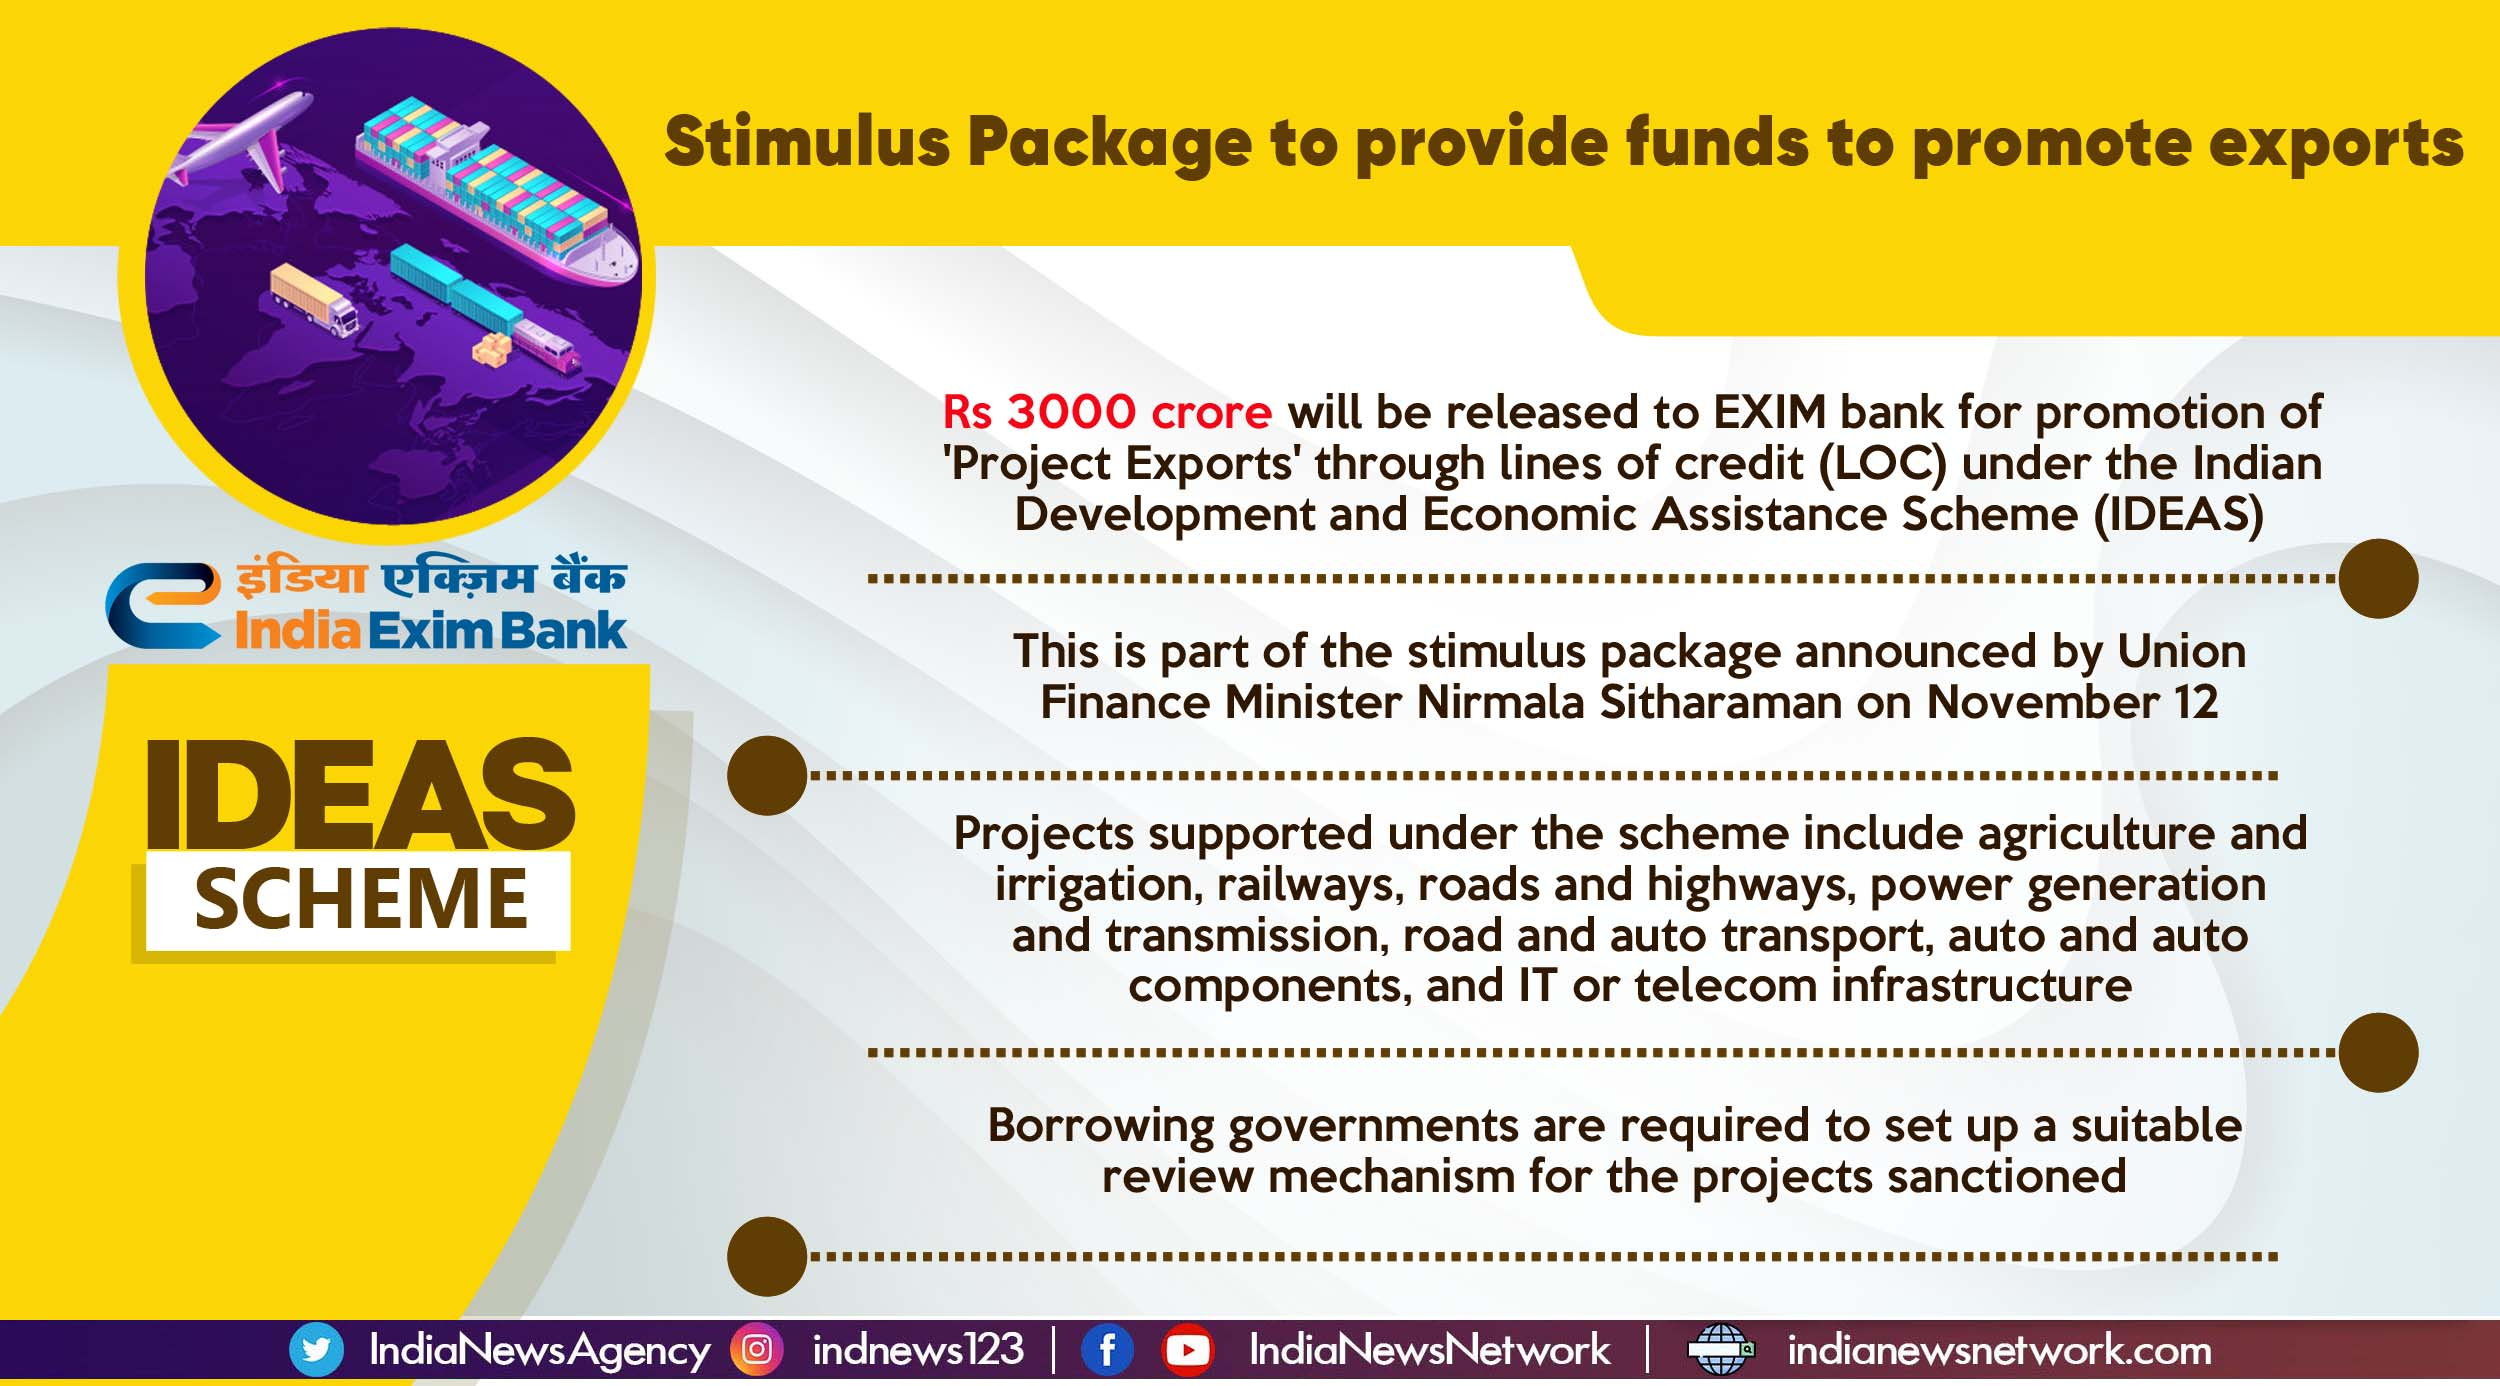 EXIM Bank to get Rs 3,000 crore to promote 'Project Exports' under IDEAS scheme